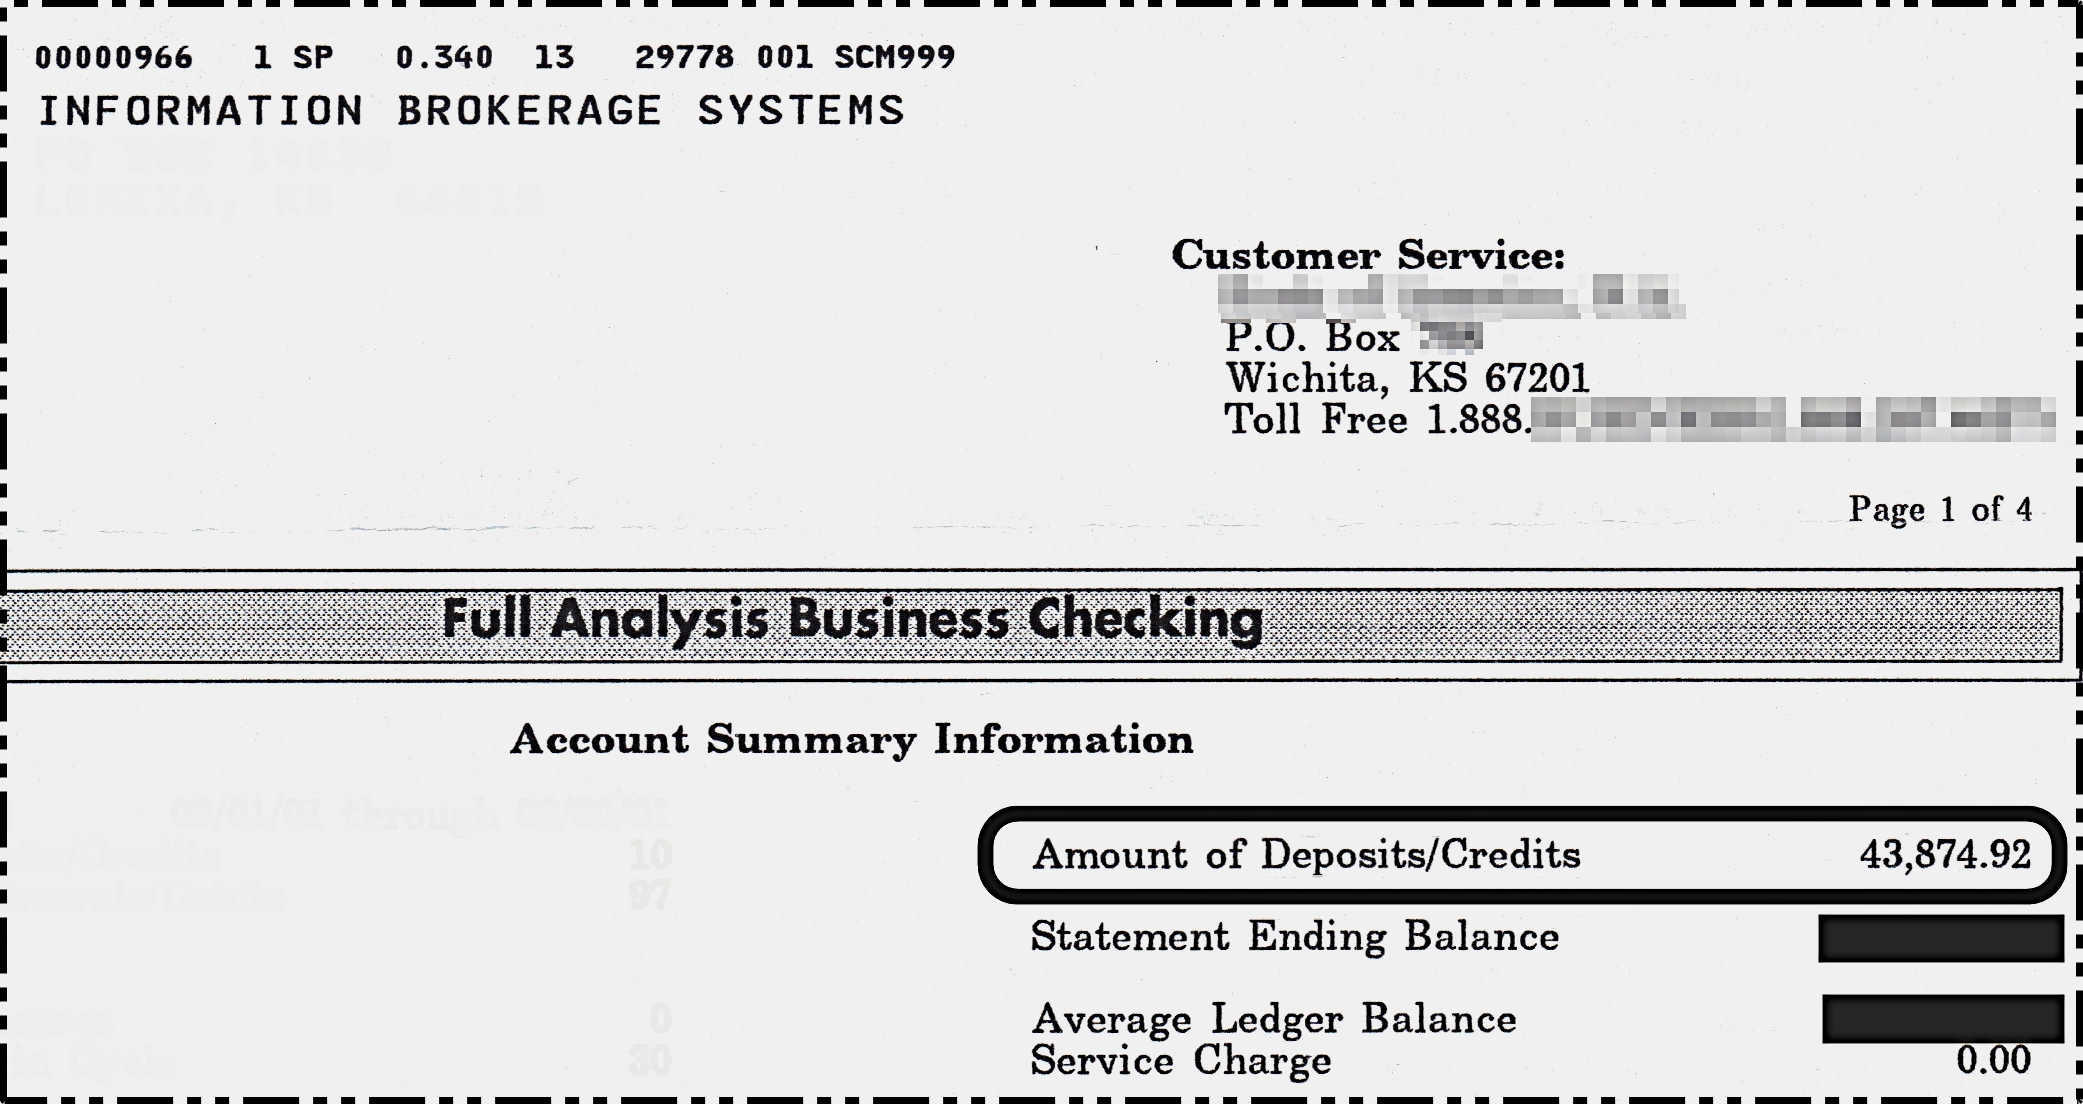 $43,874.92 Bank Statement